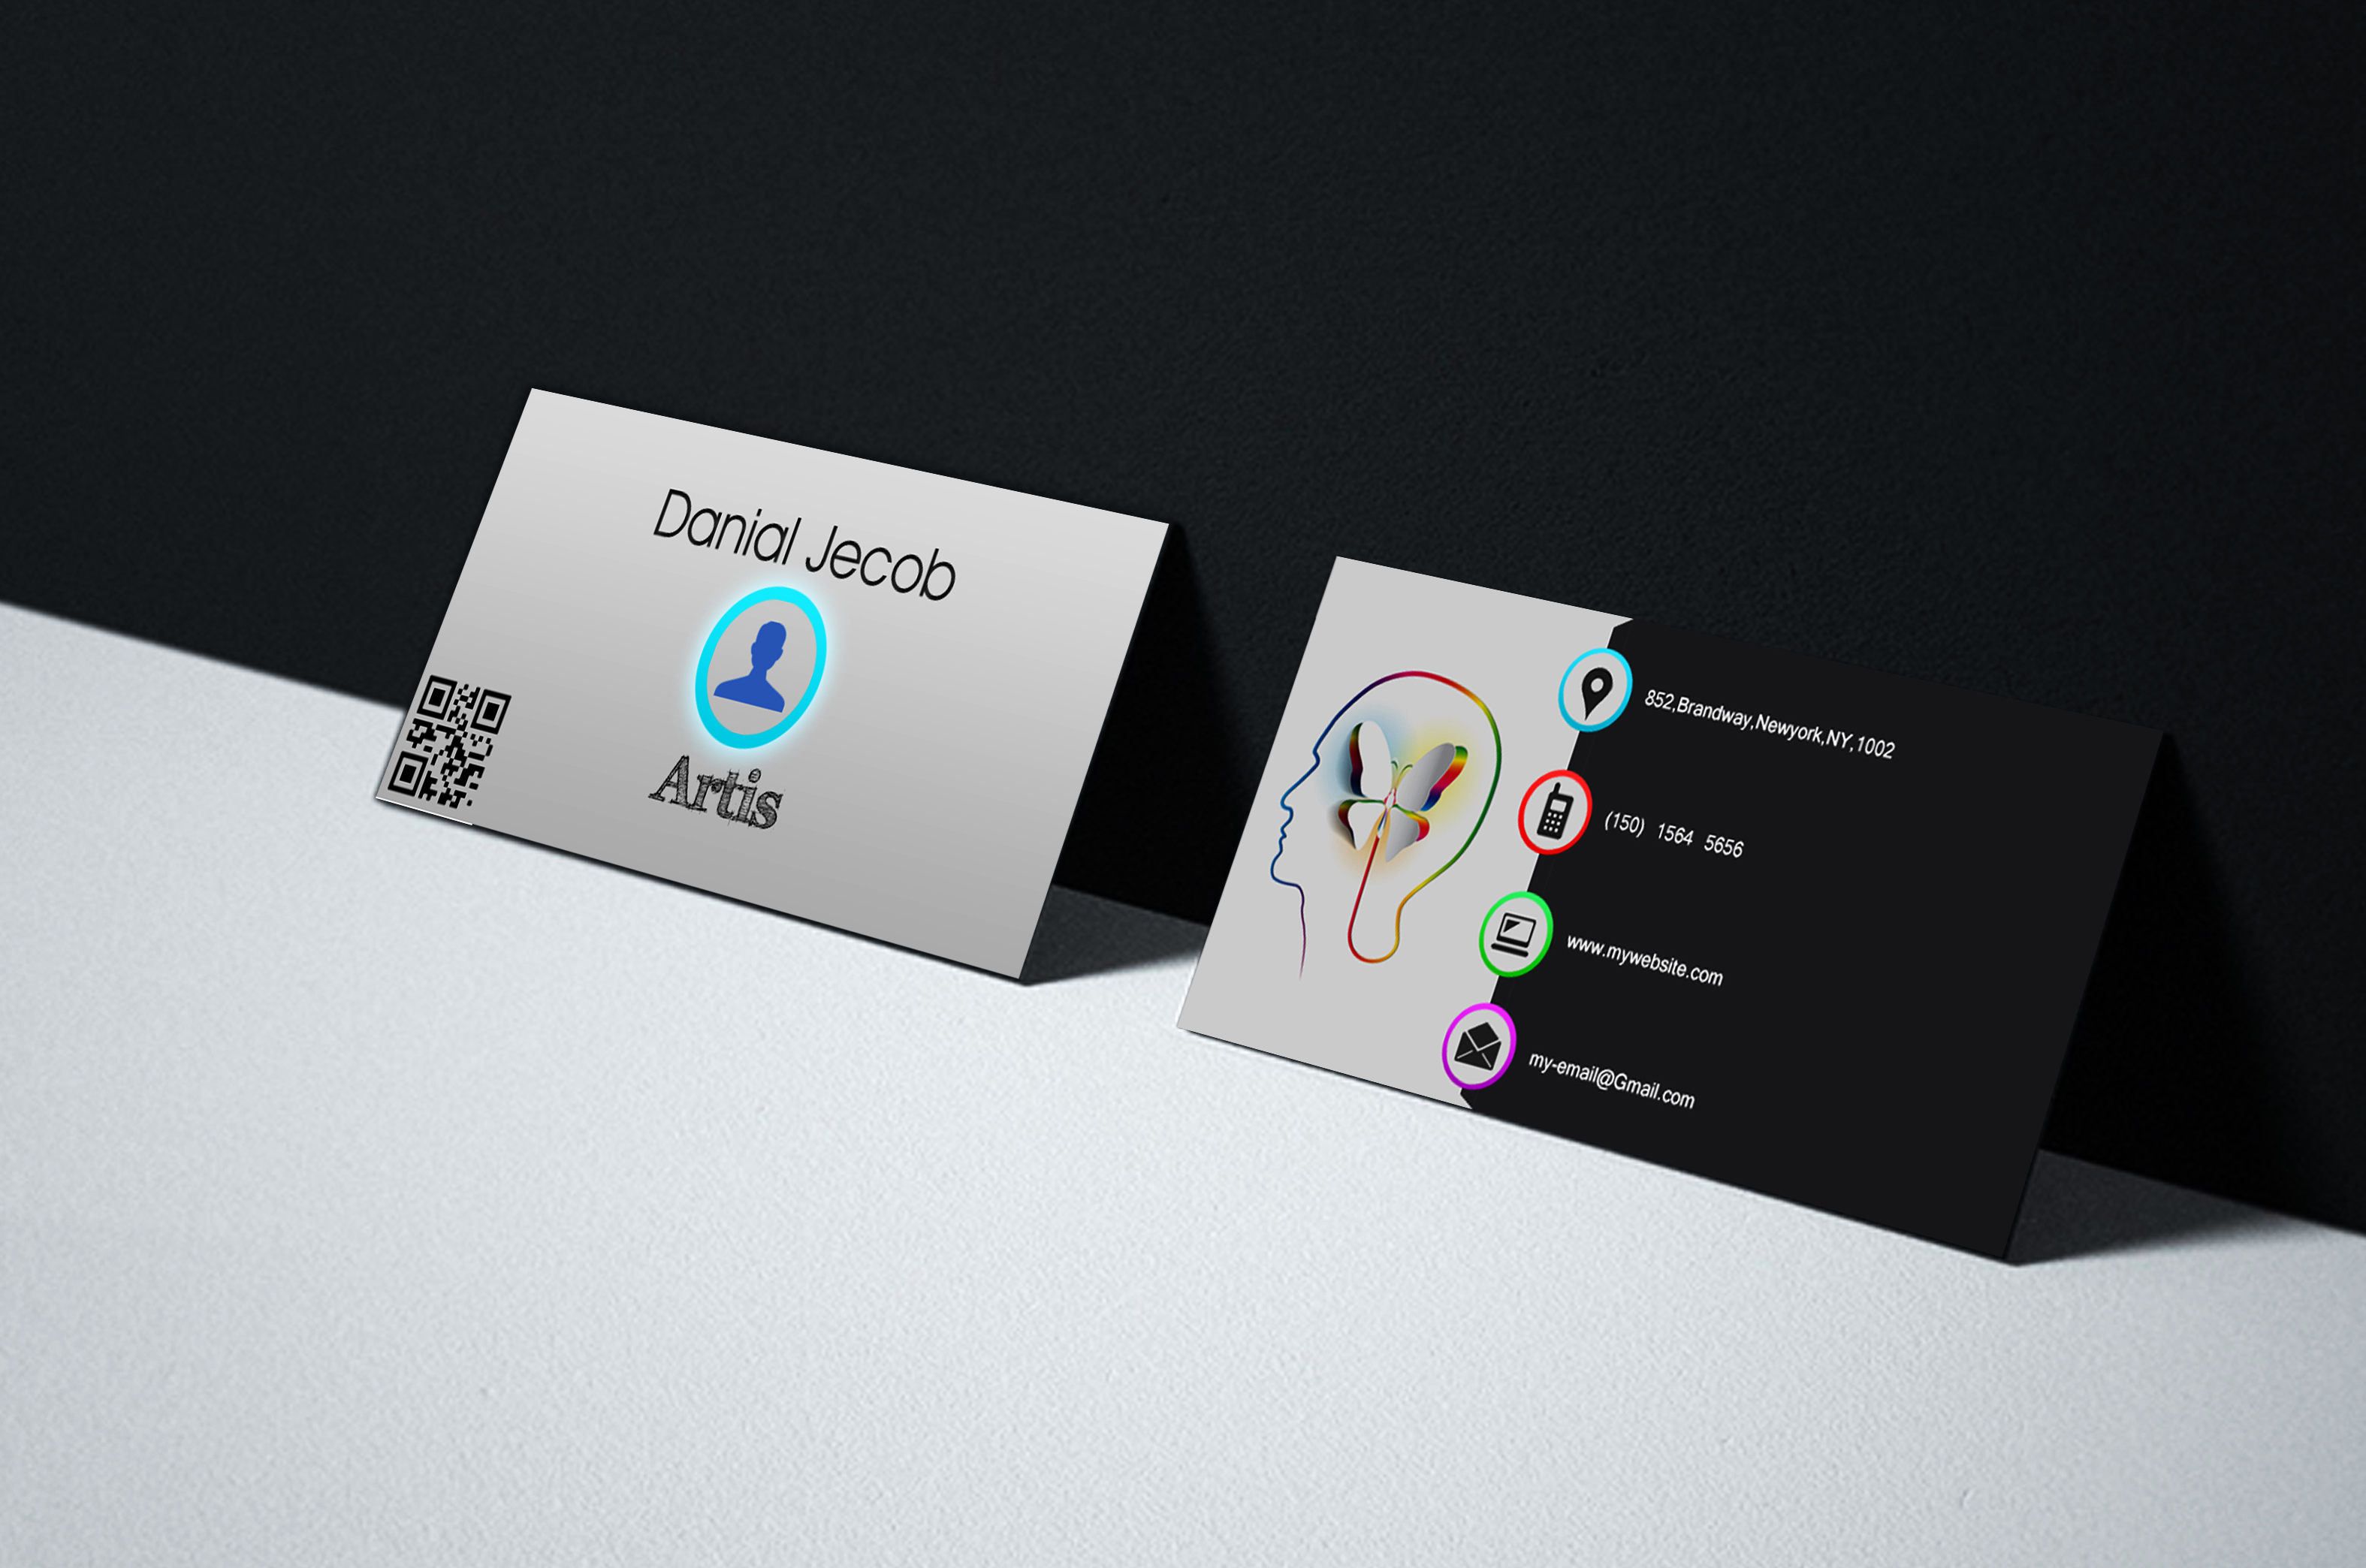 Create 3 stylish business card design.